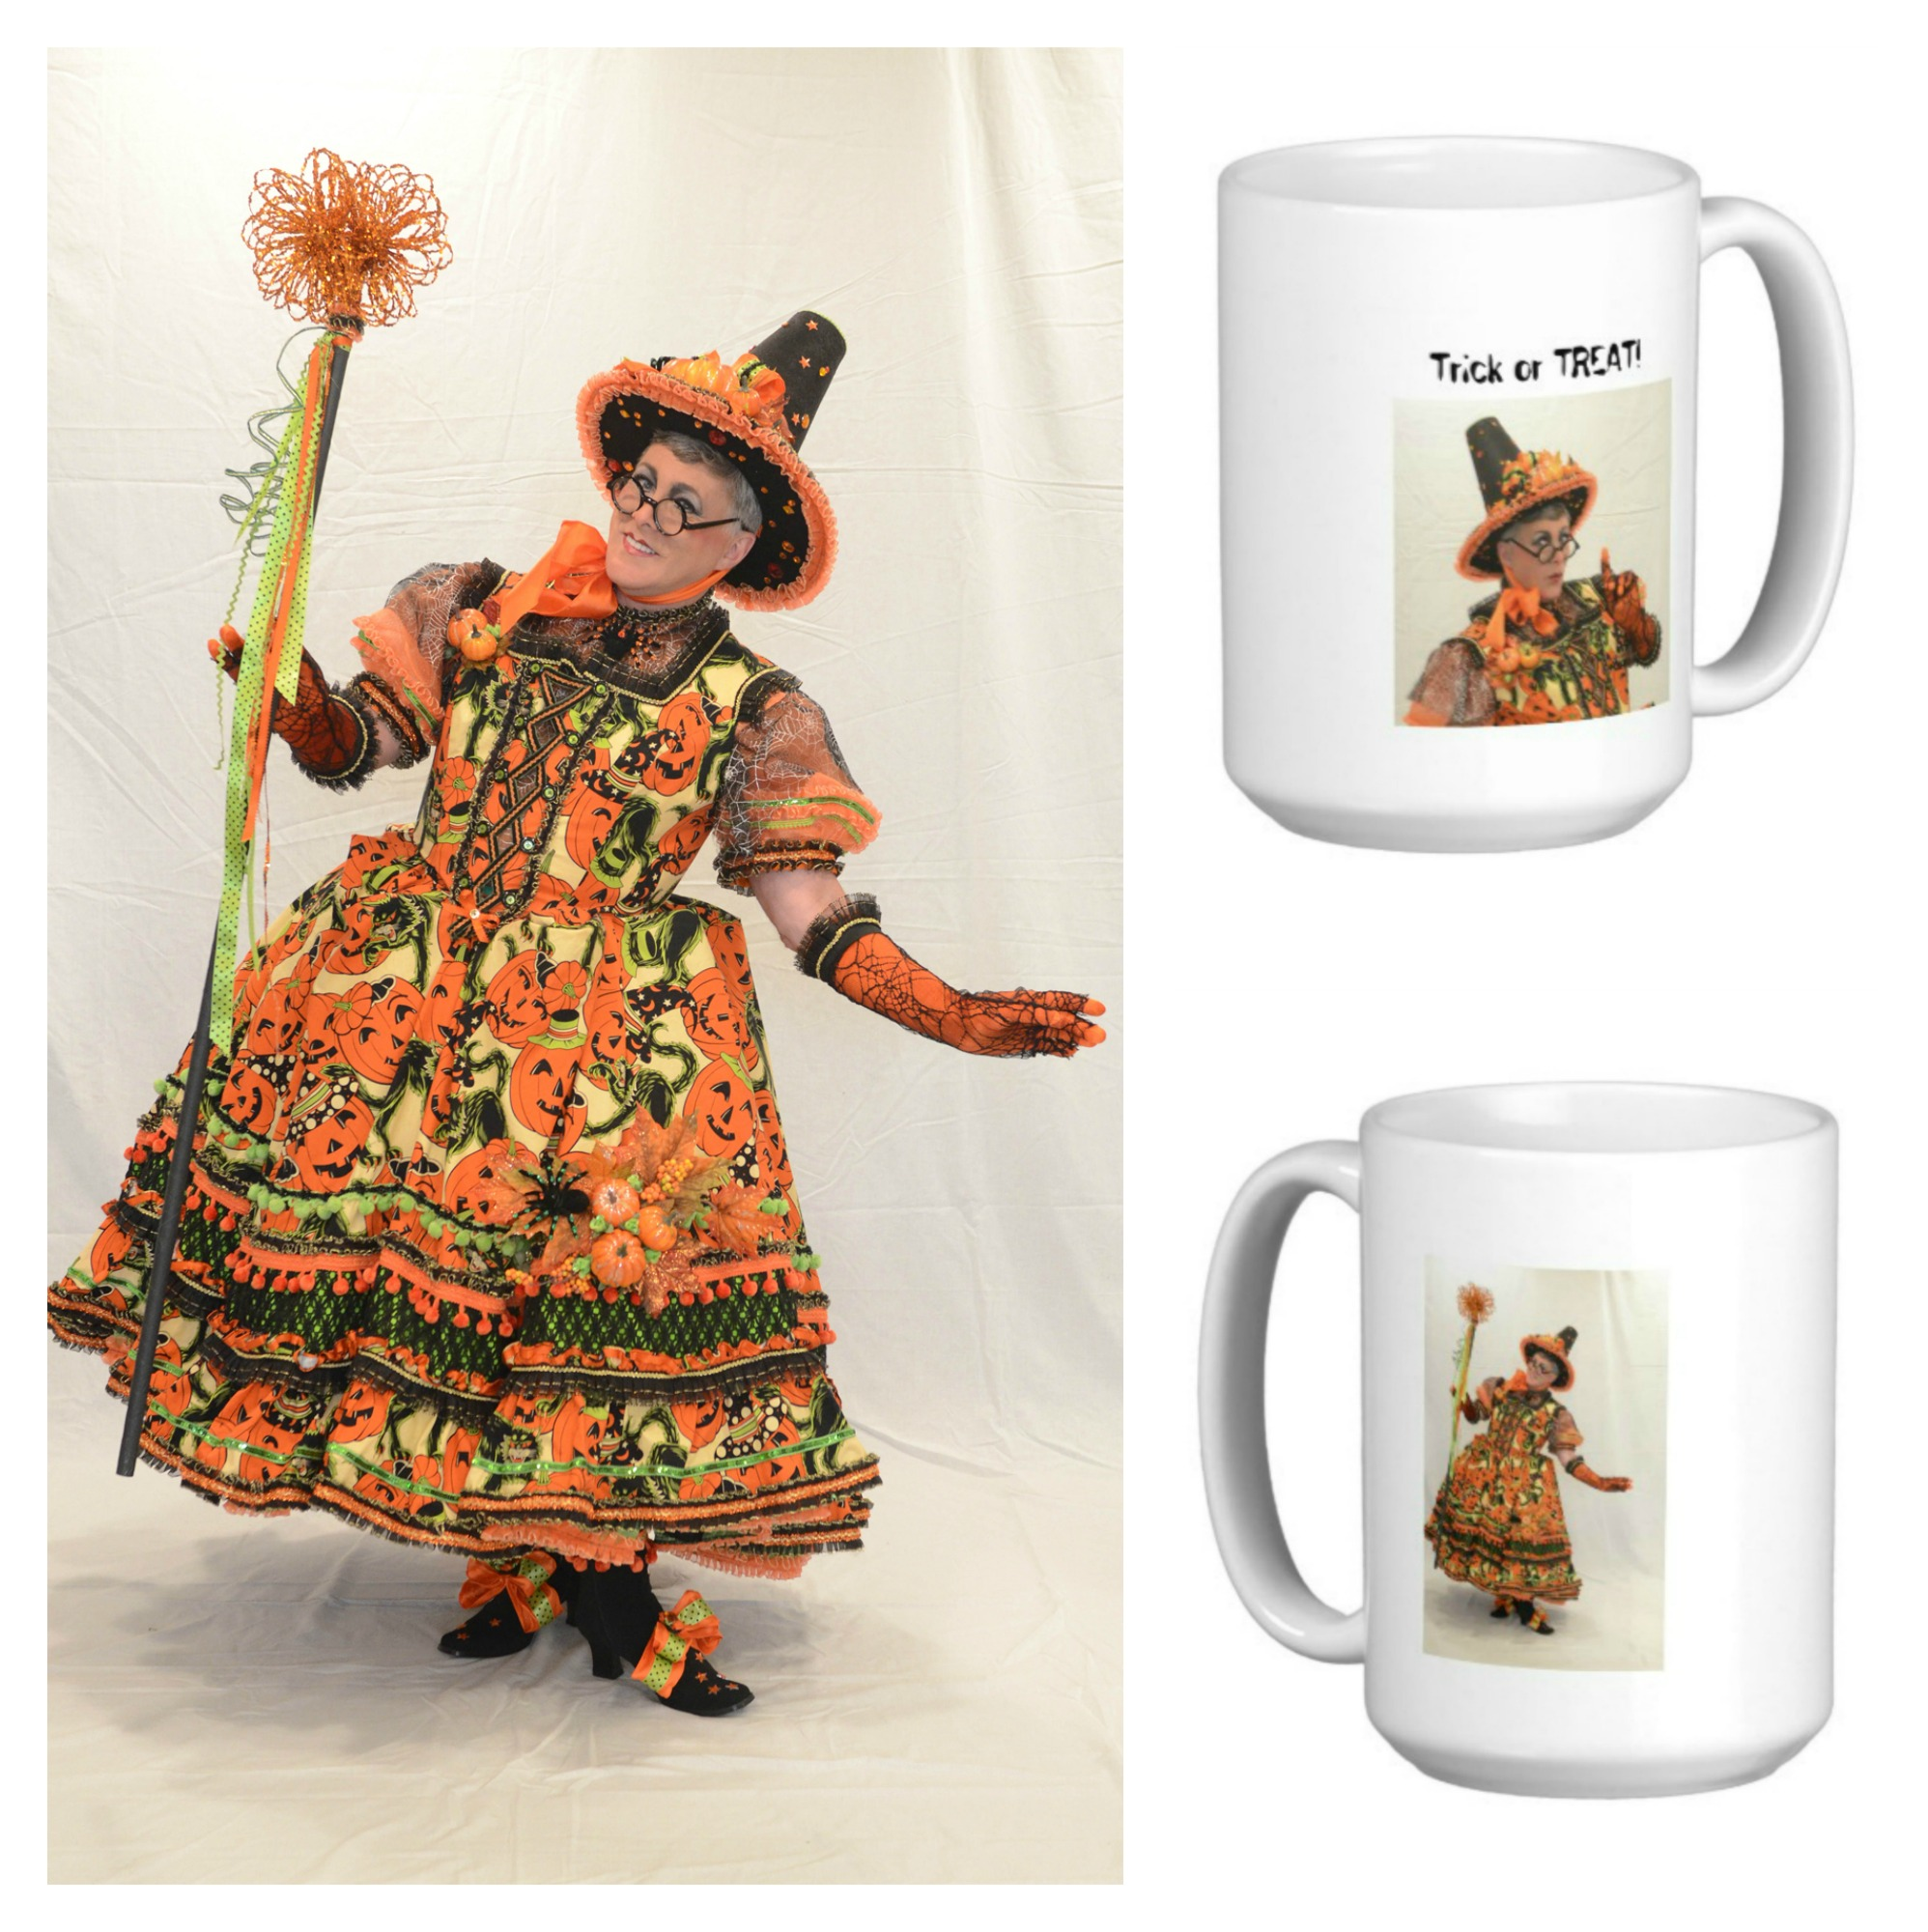 Collage Halloween Zazzle cup.jpg